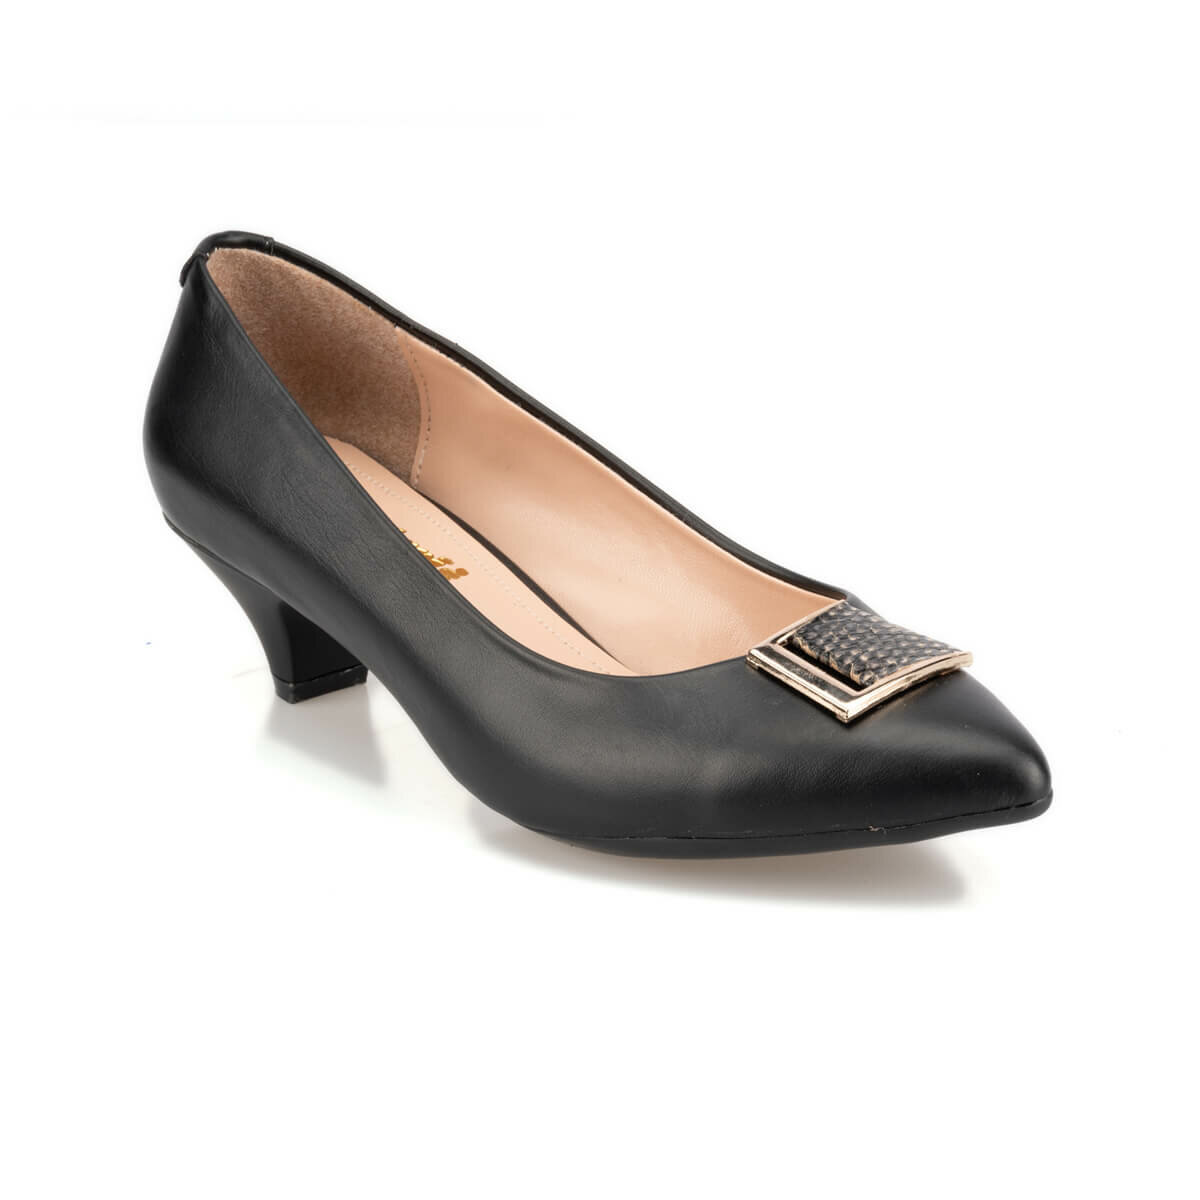 FLO 92.314175.Z Black Women Gova Shoes Polaris